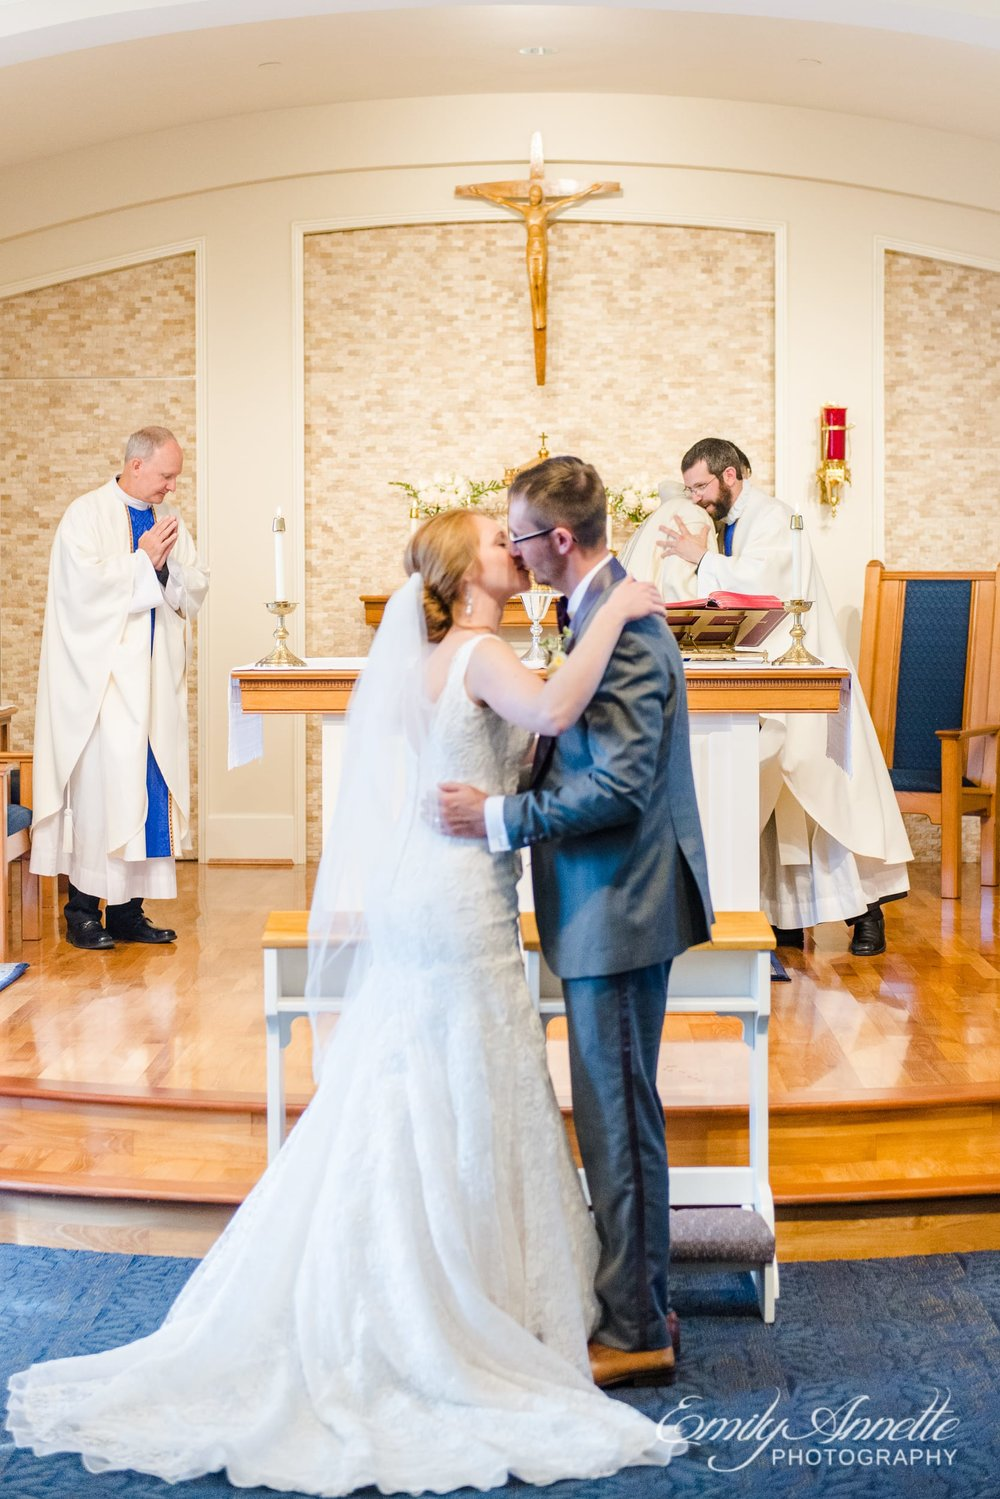 The bride and groom kiss during their Catholic wedding ceremony at Marymount University's Sacred Heart of Mary Chapel in Arlington, Virginia